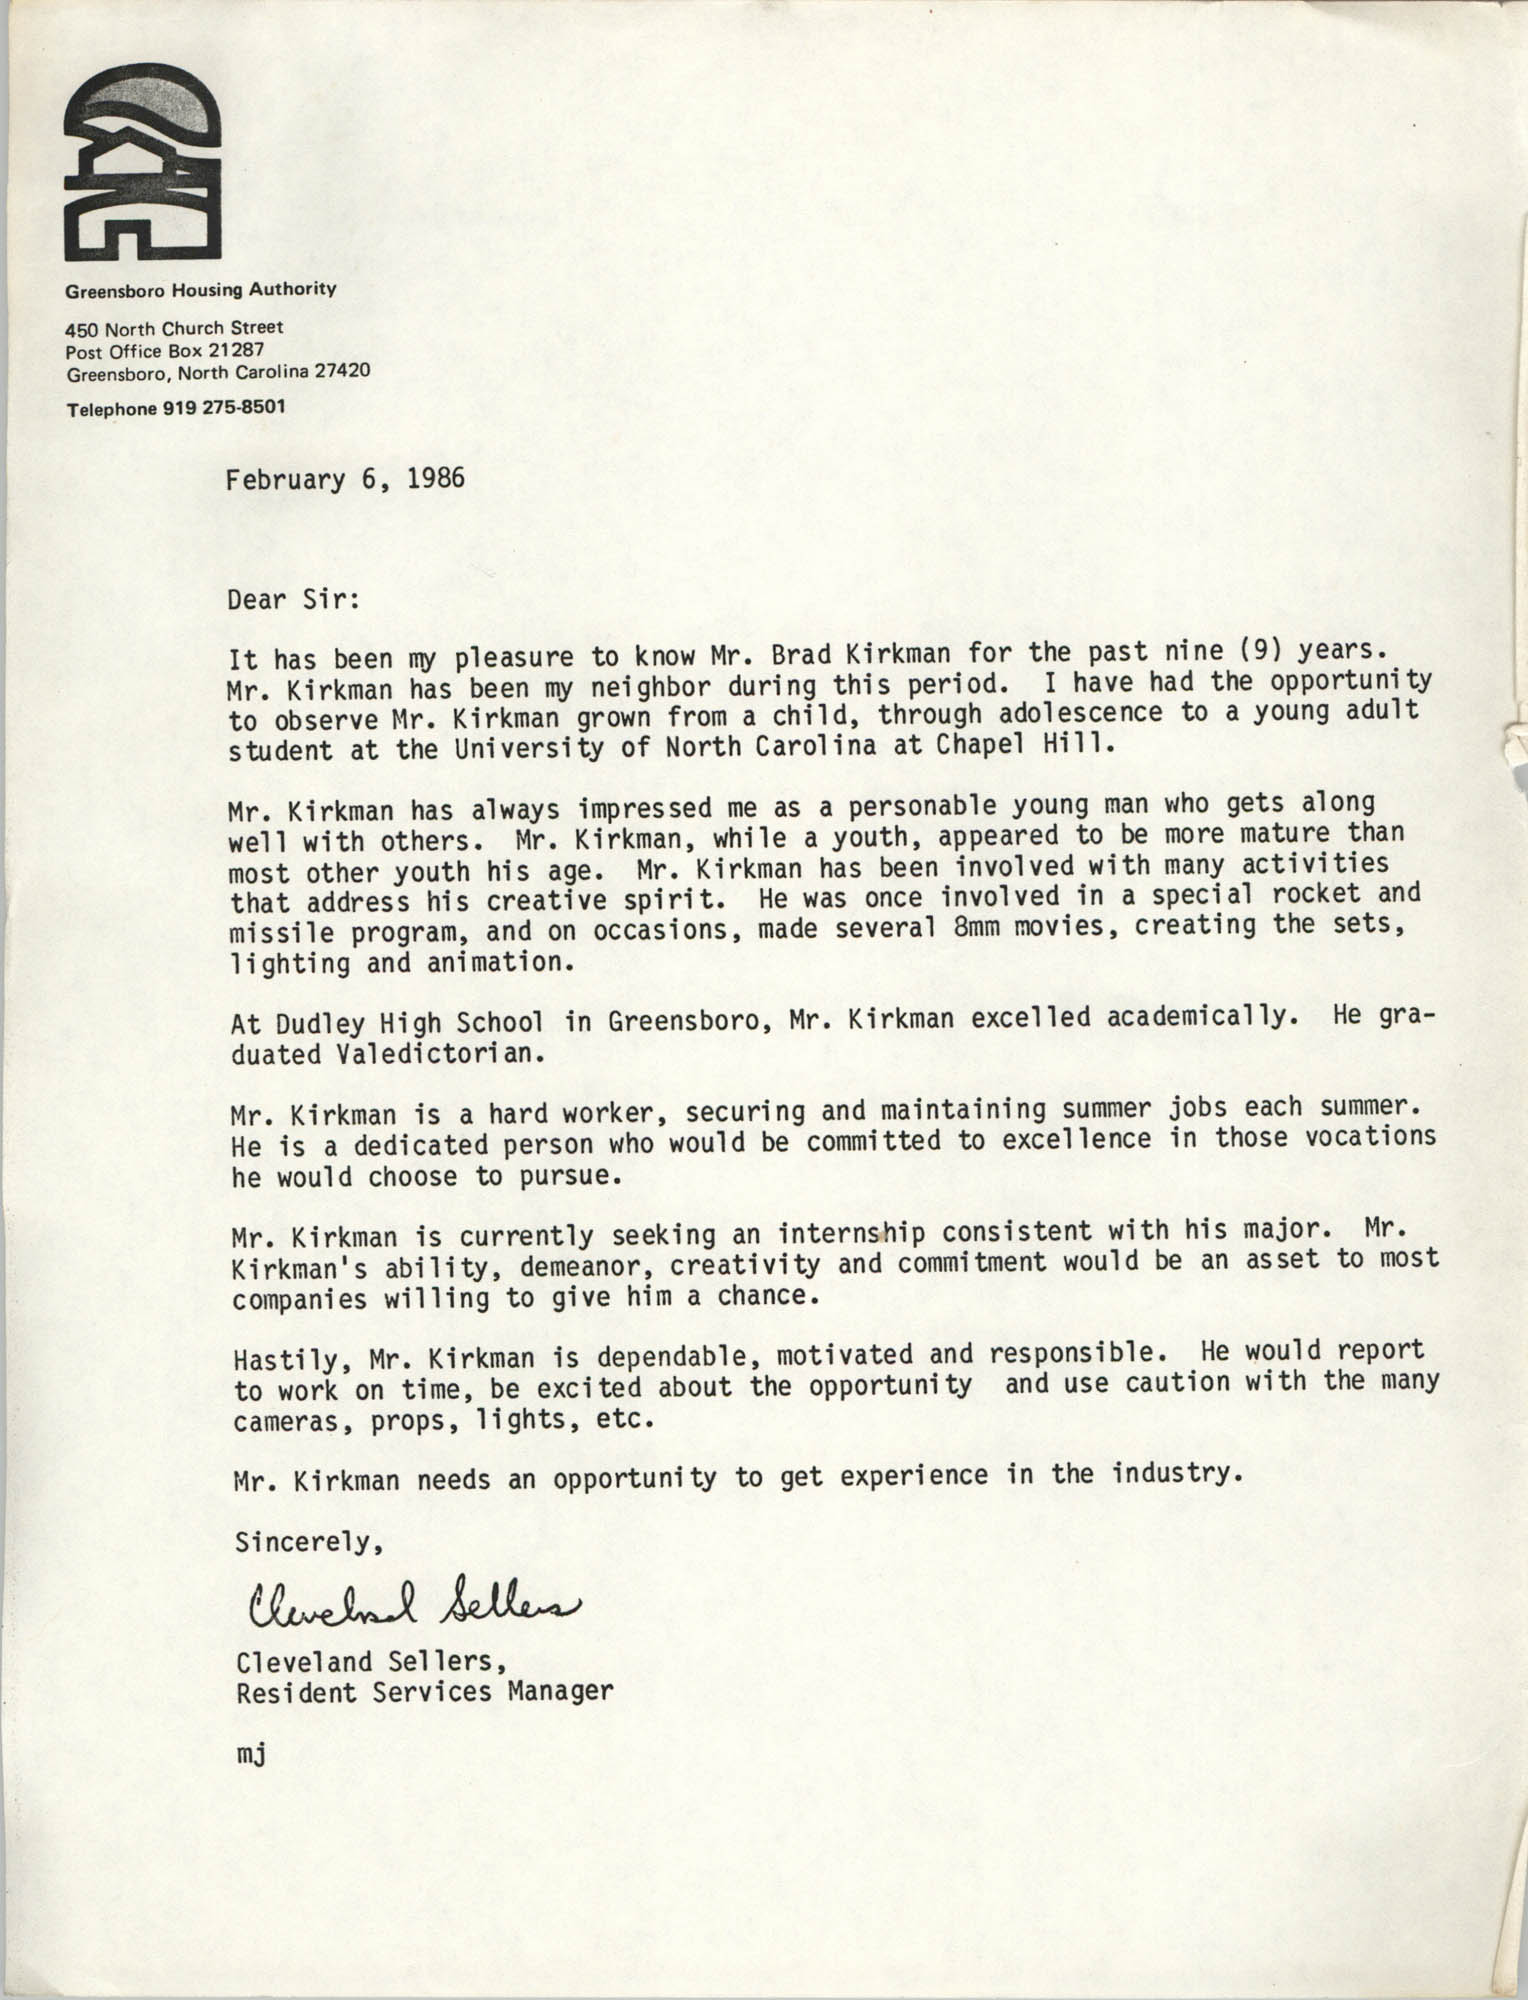 Letter from Cleveland Sellers, February 6, 1986